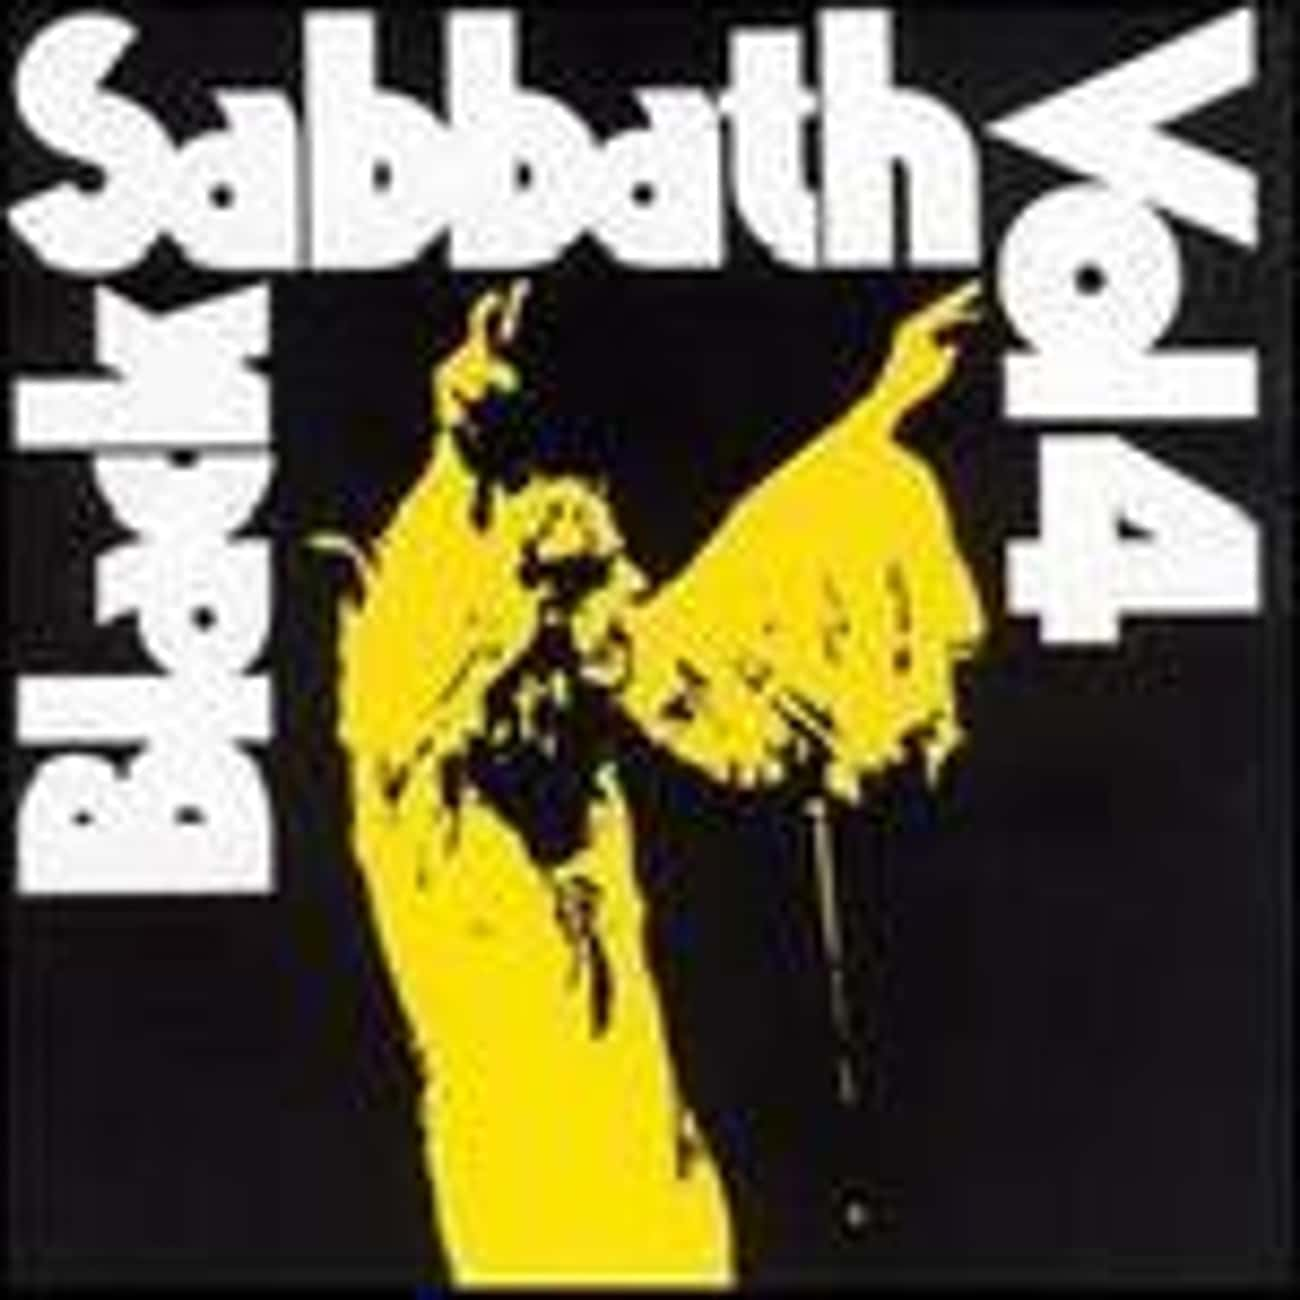 Black Sabbath Vol. 4 is listed (or ranked) 1 on the list The Best Black Sabbath Albums List, Ranked Discography